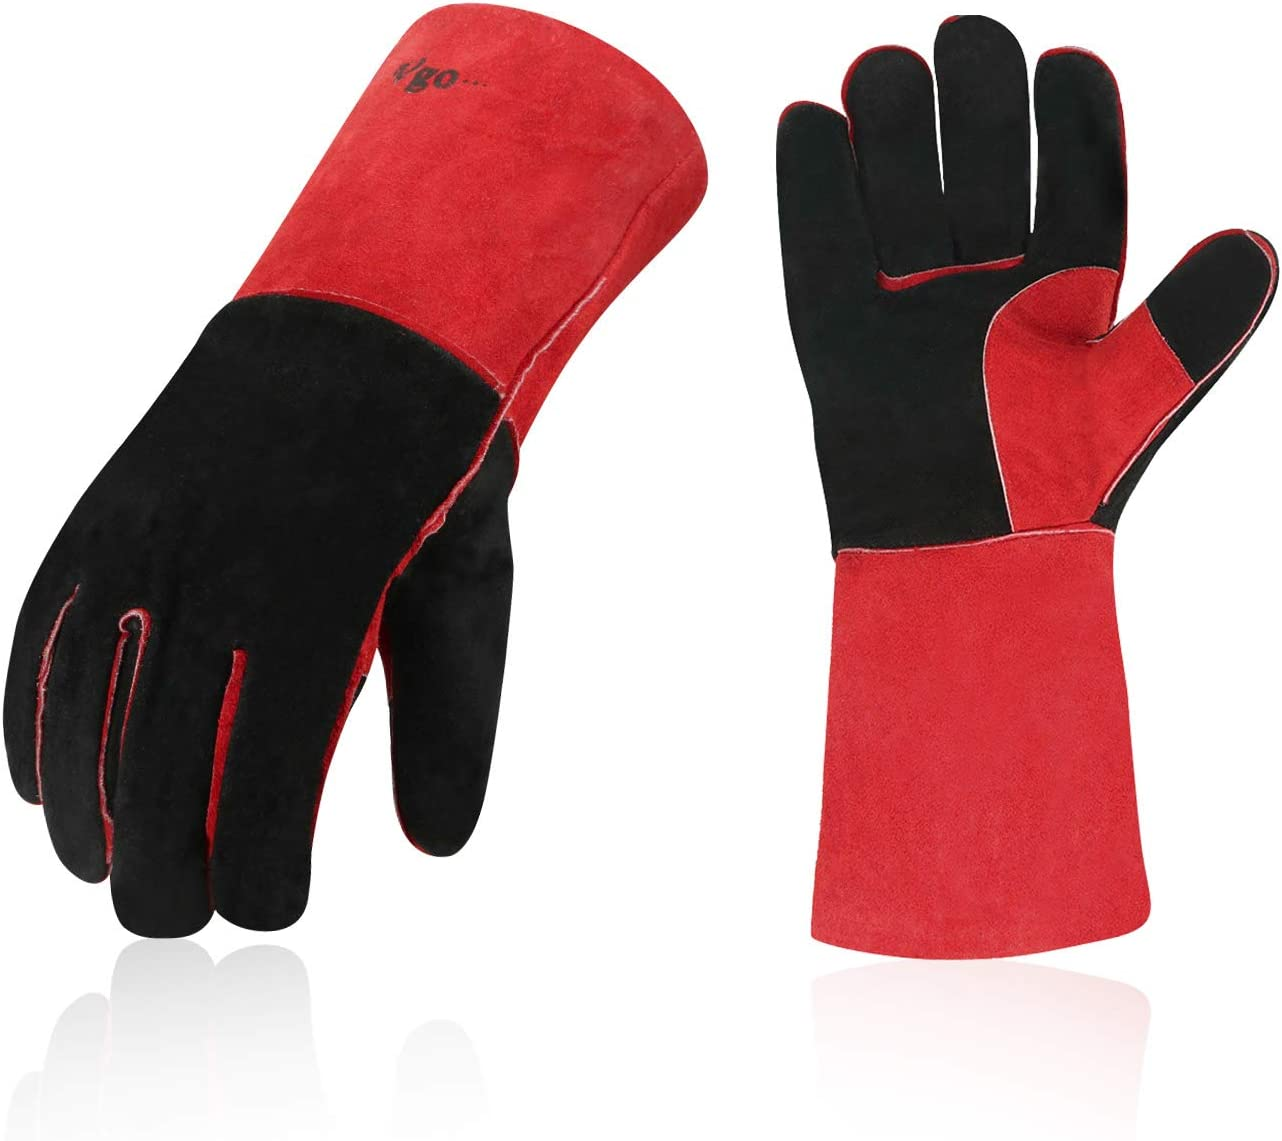 Vgo 2-Pairs Cow Split Leather Welding Challenge the lowest price Oven Fi Grill For Max 62% OFF Gloves